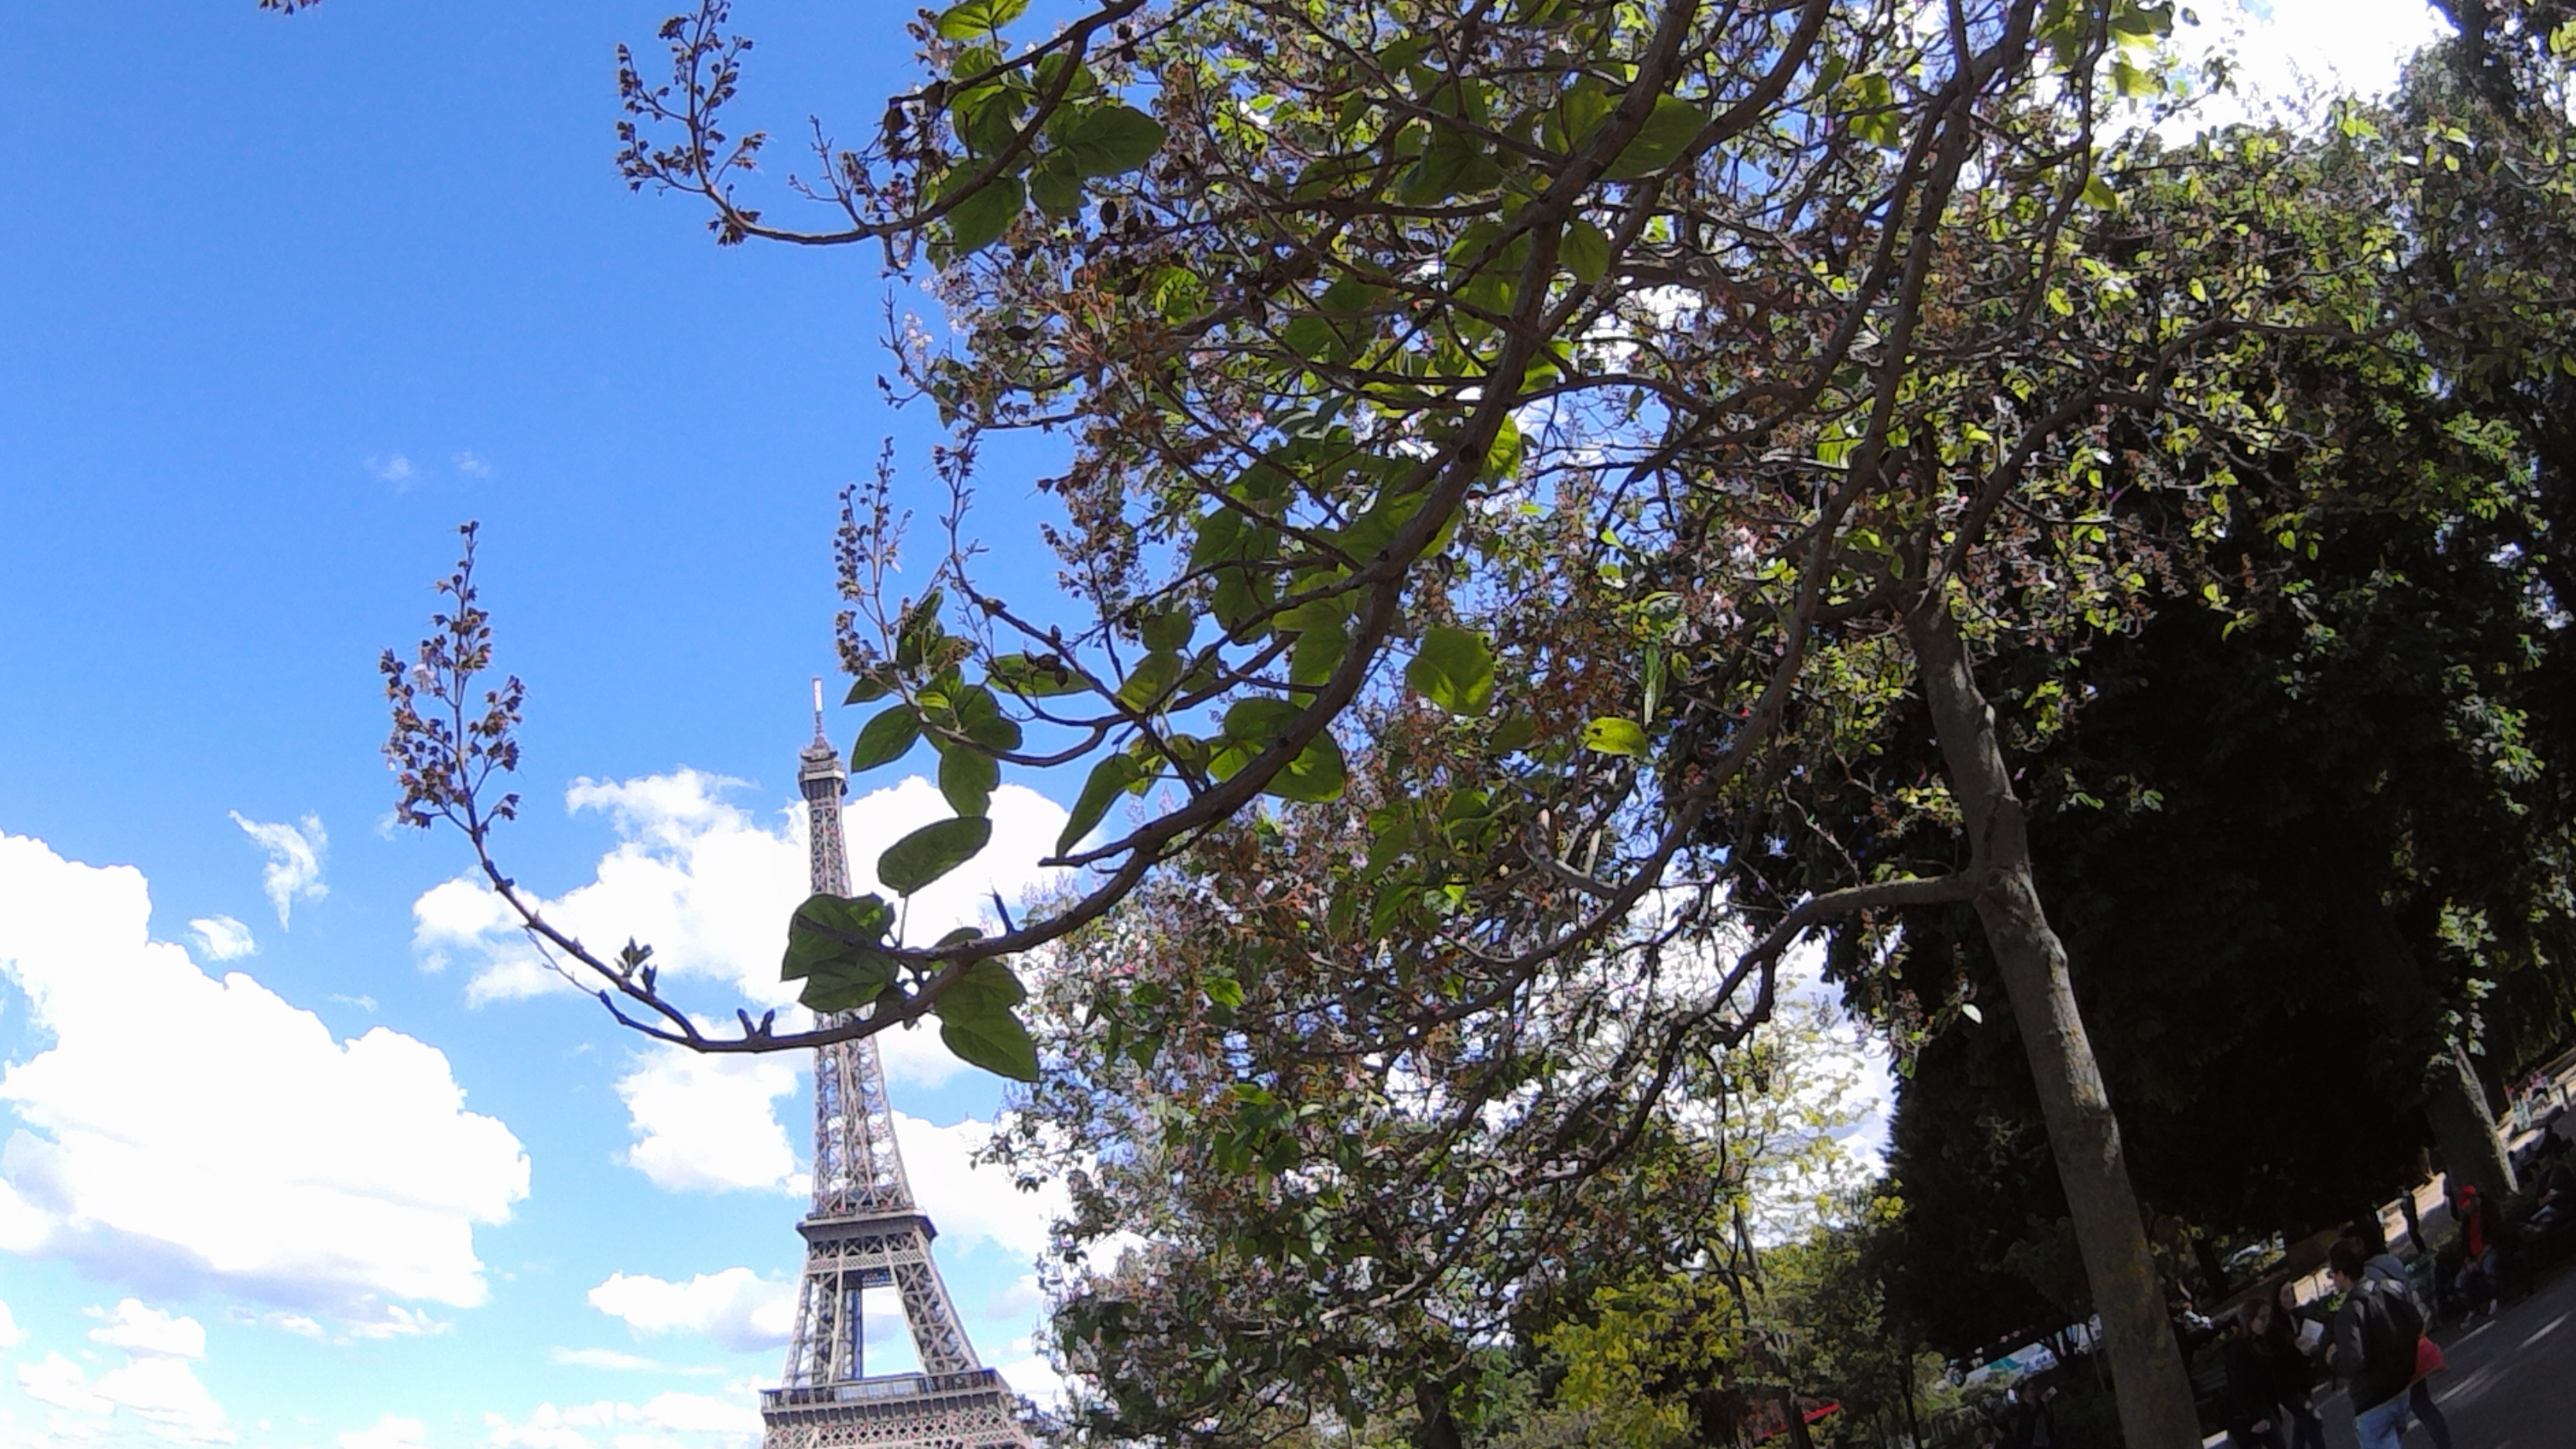 Jean-Luc Del Valle ('19 biology) studied abroad in Paris, France. This photo was taken near the Eiffel Tower.